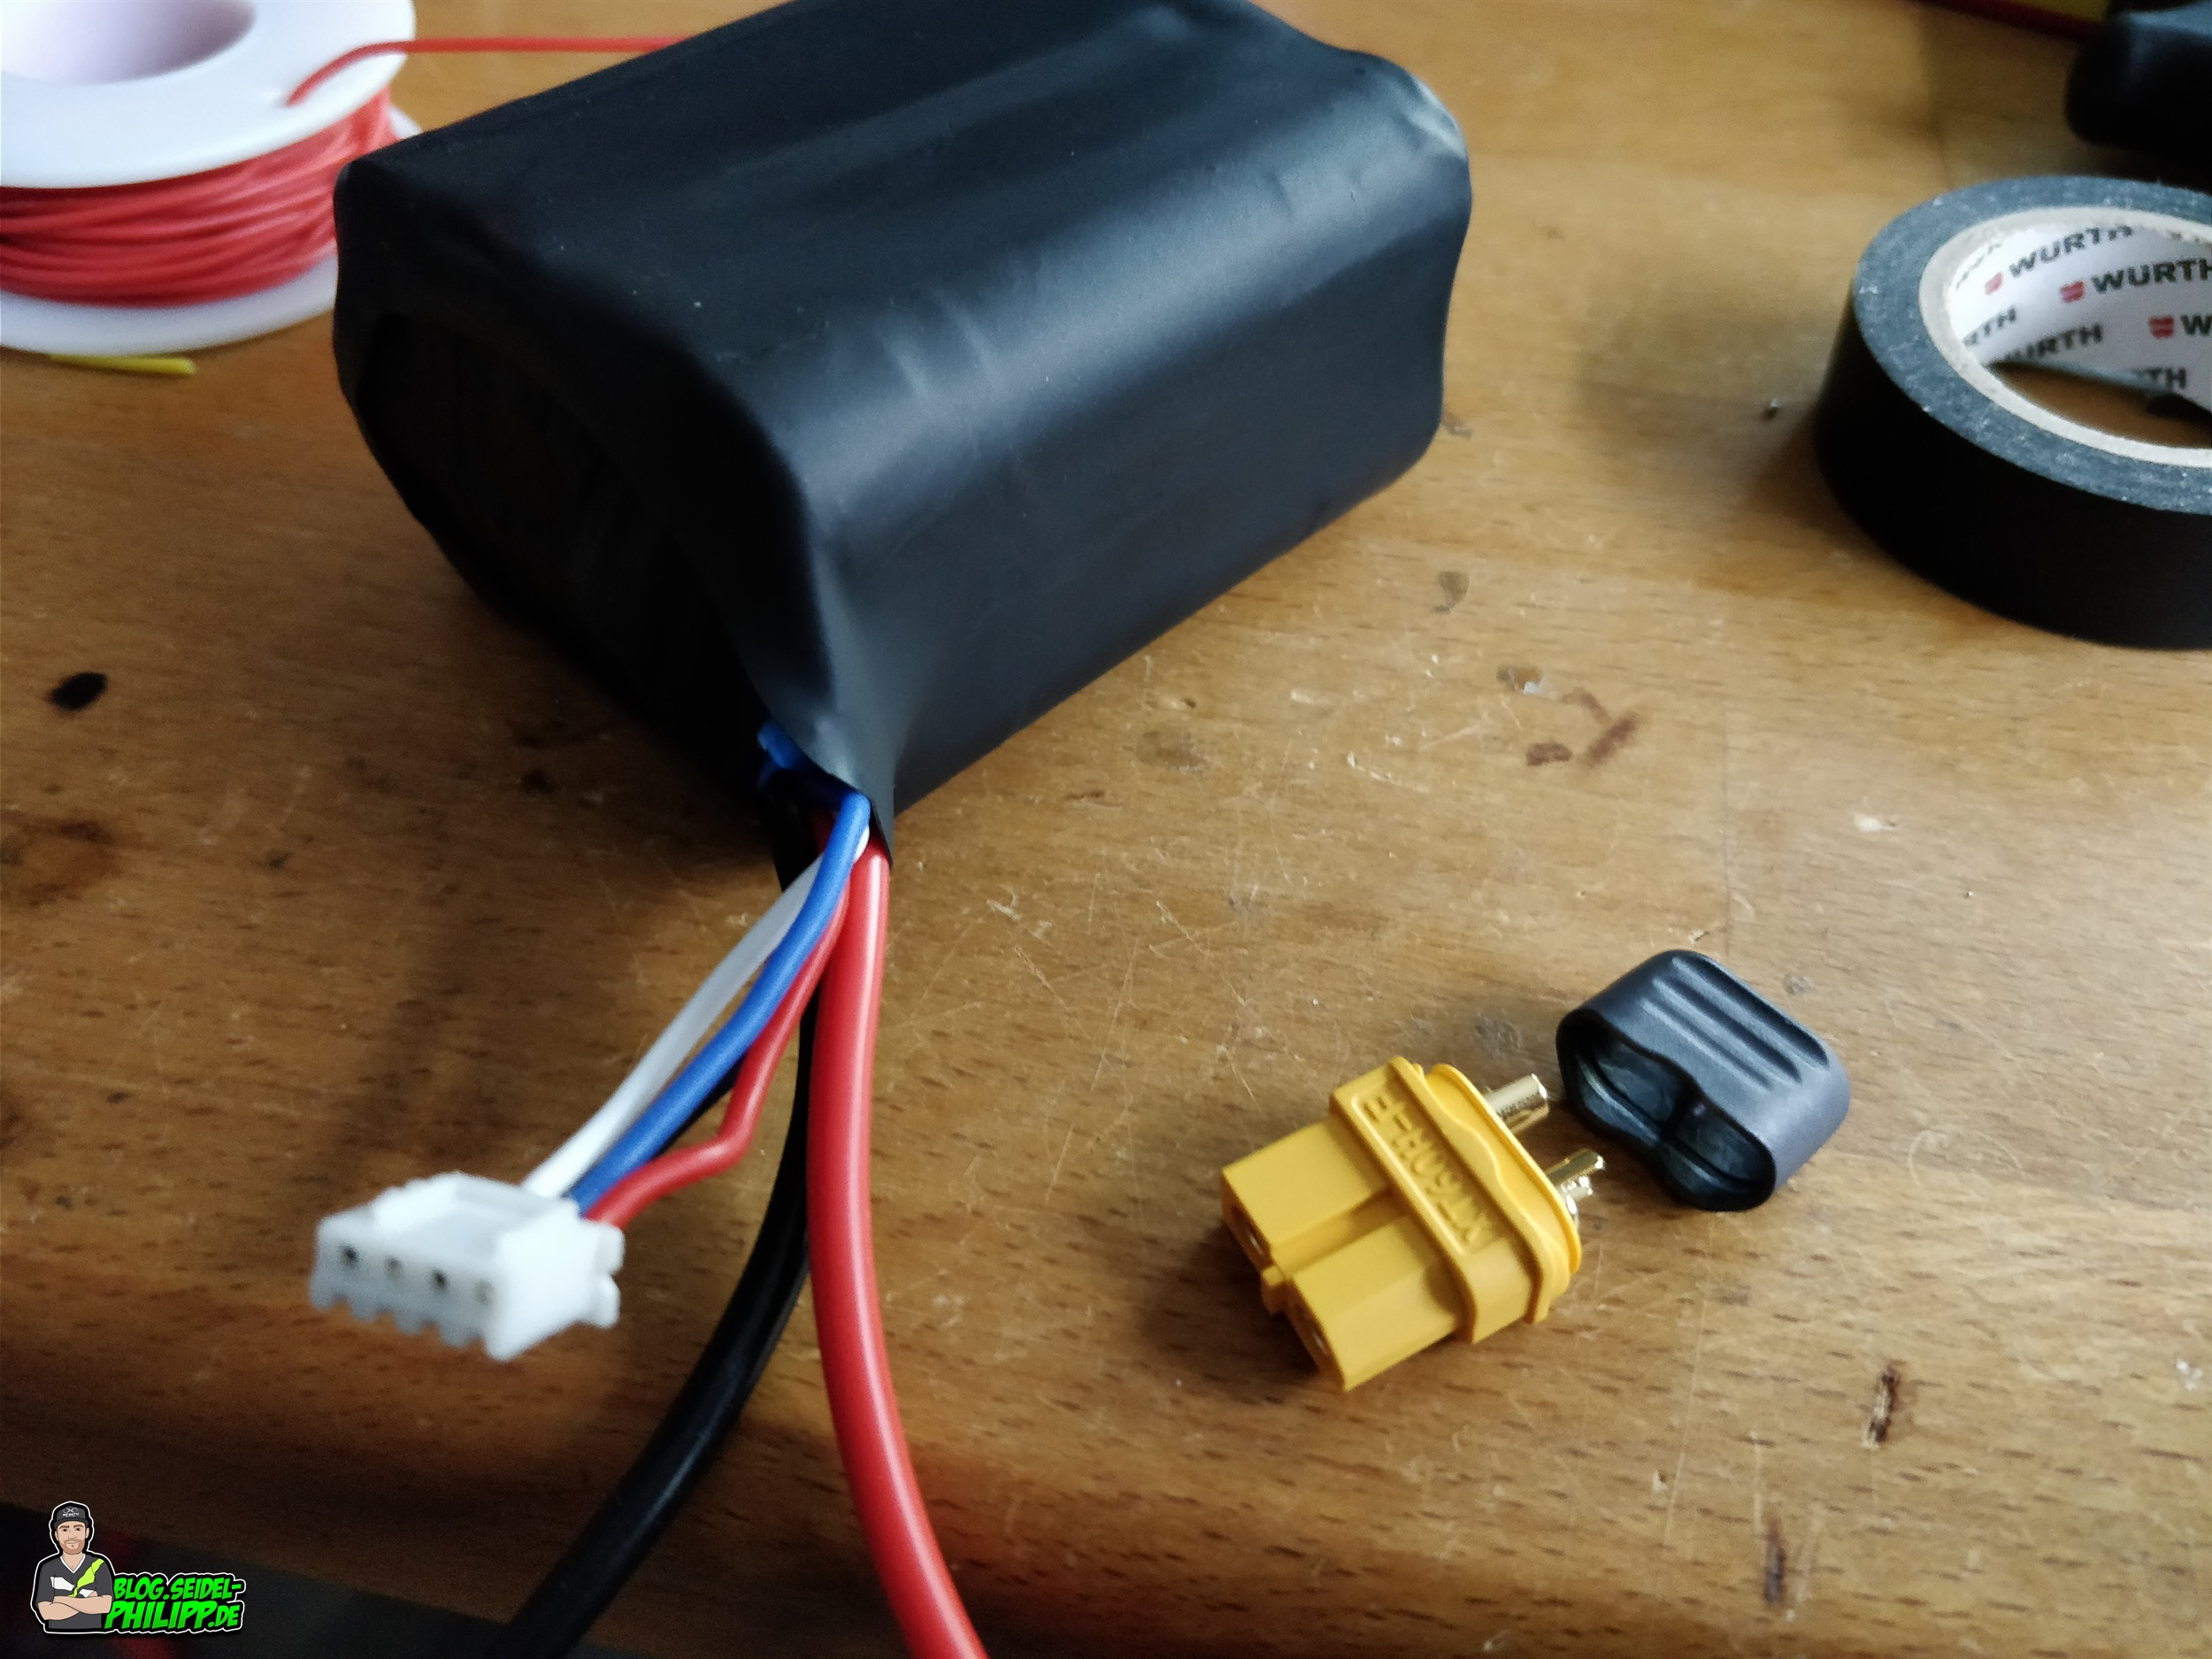 Diy Build A Longrange Lithium Ion Battery To Make Your Own Drone On Low Voltage Cut Off Circuit Diagram I Decided Use The Xt60 Connector From Amass Because It Has Plastic Protective Cap And You Dont Have Shrink Tubing